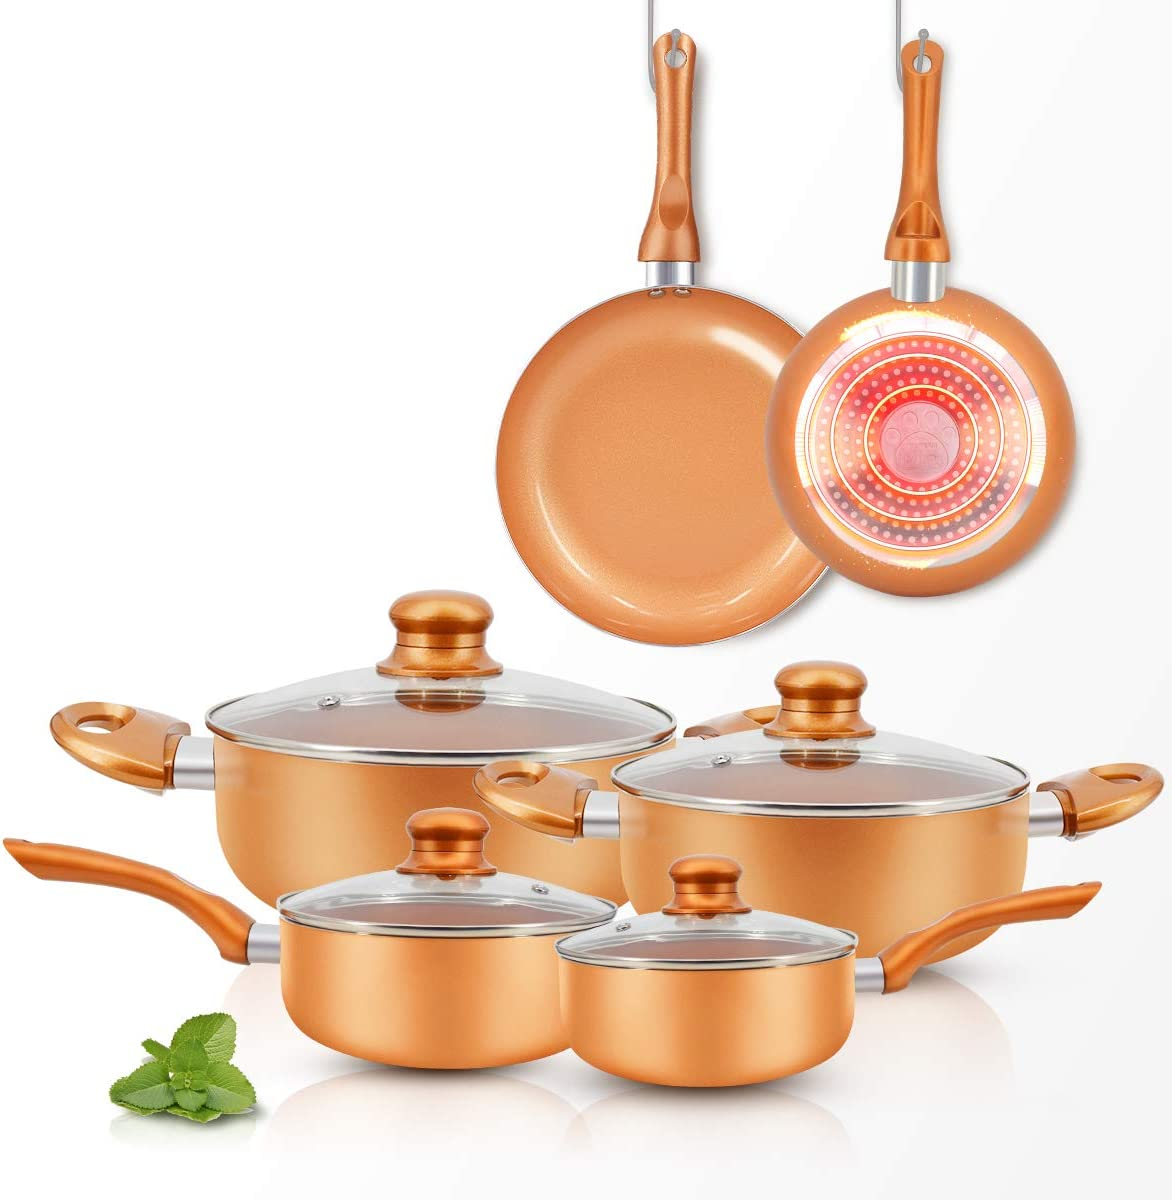 FRUITEAM 10pcs Cookware Set Ceramic Nonstick Soup Pot/Milk Pot/Frying Pans Set | Copper Aluminum Pan with Lid, Induction Gas Compatible, 1 Year Warranty Mothers Day Gifts for Wife…